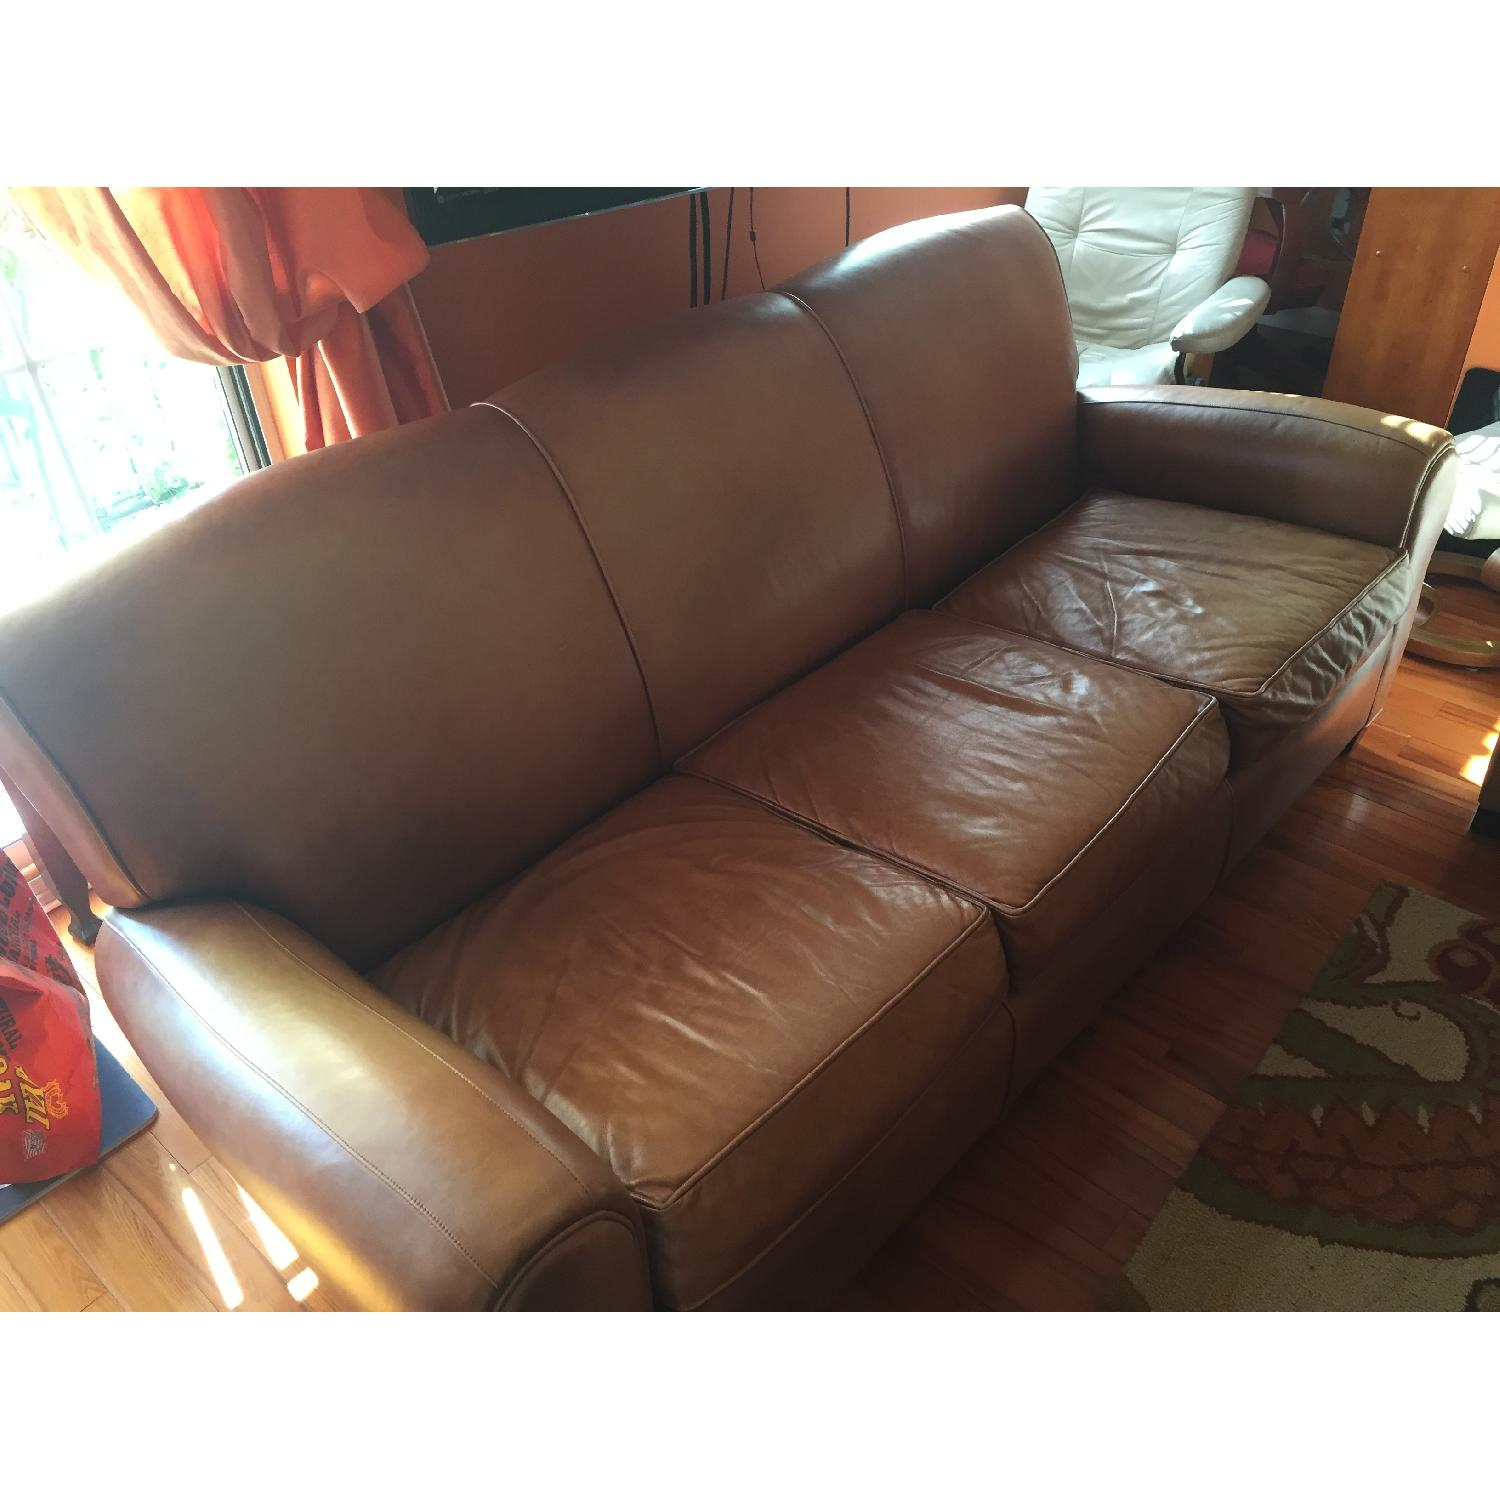 Pottery Barn Manhattan Leather Couch - image-1